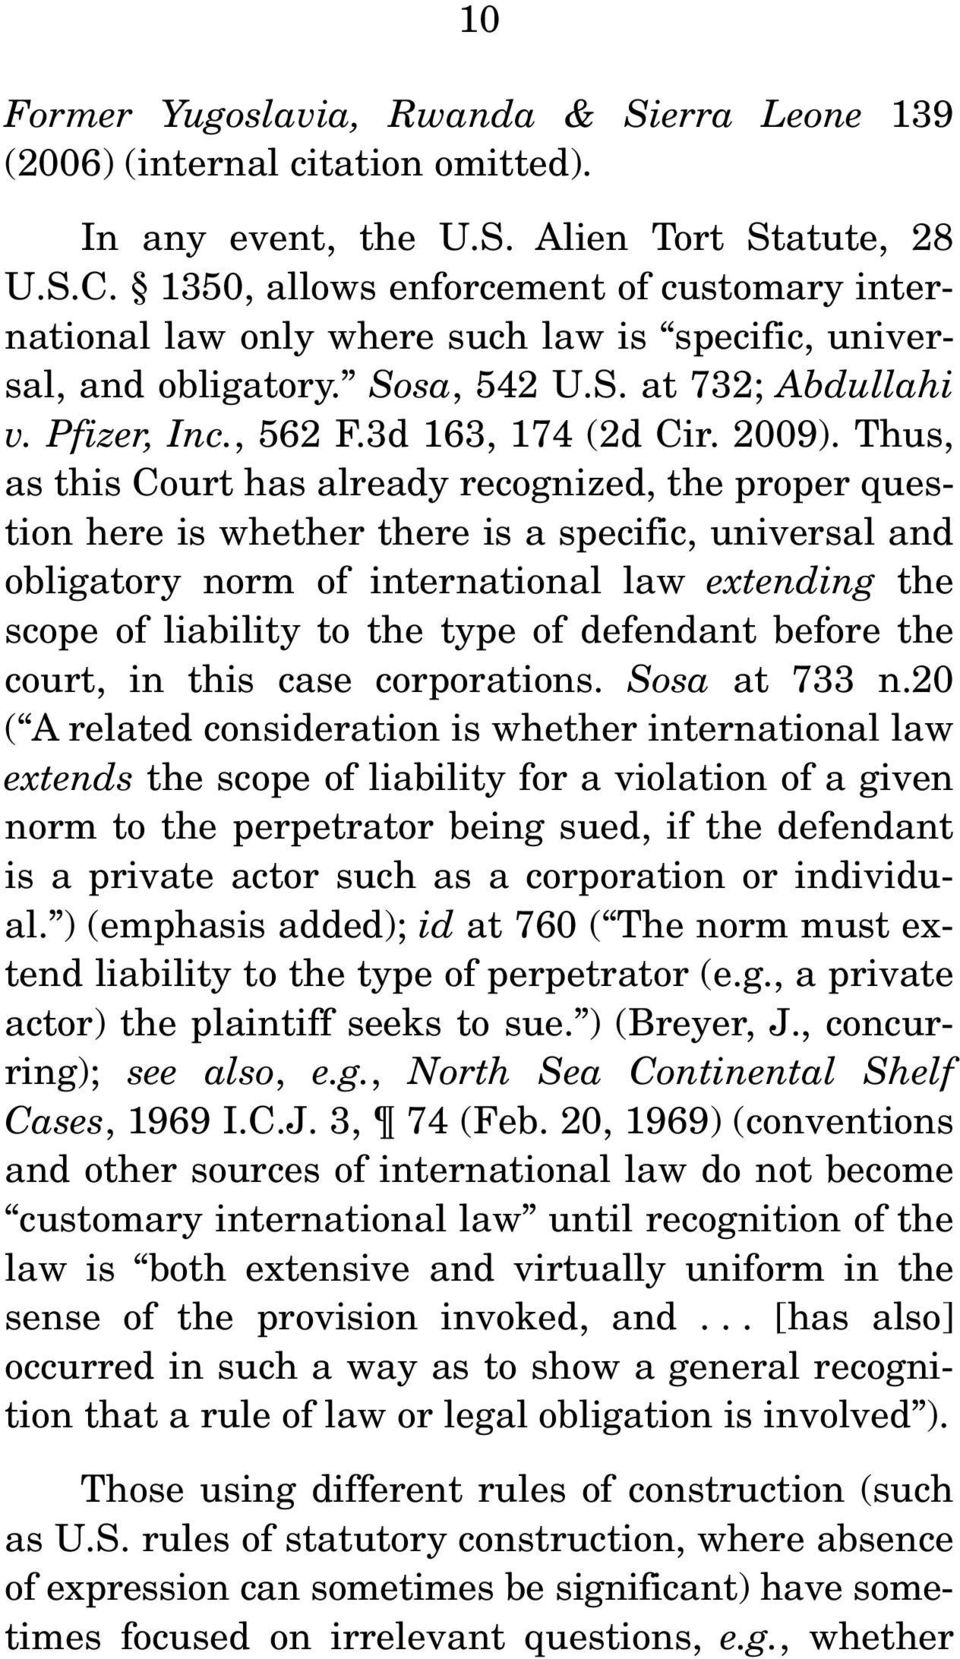 Thus, as this Court has already recognized, the proper question here is whether there is a specific, universal and obligatory norm of international law extending the scope of liability to the type of